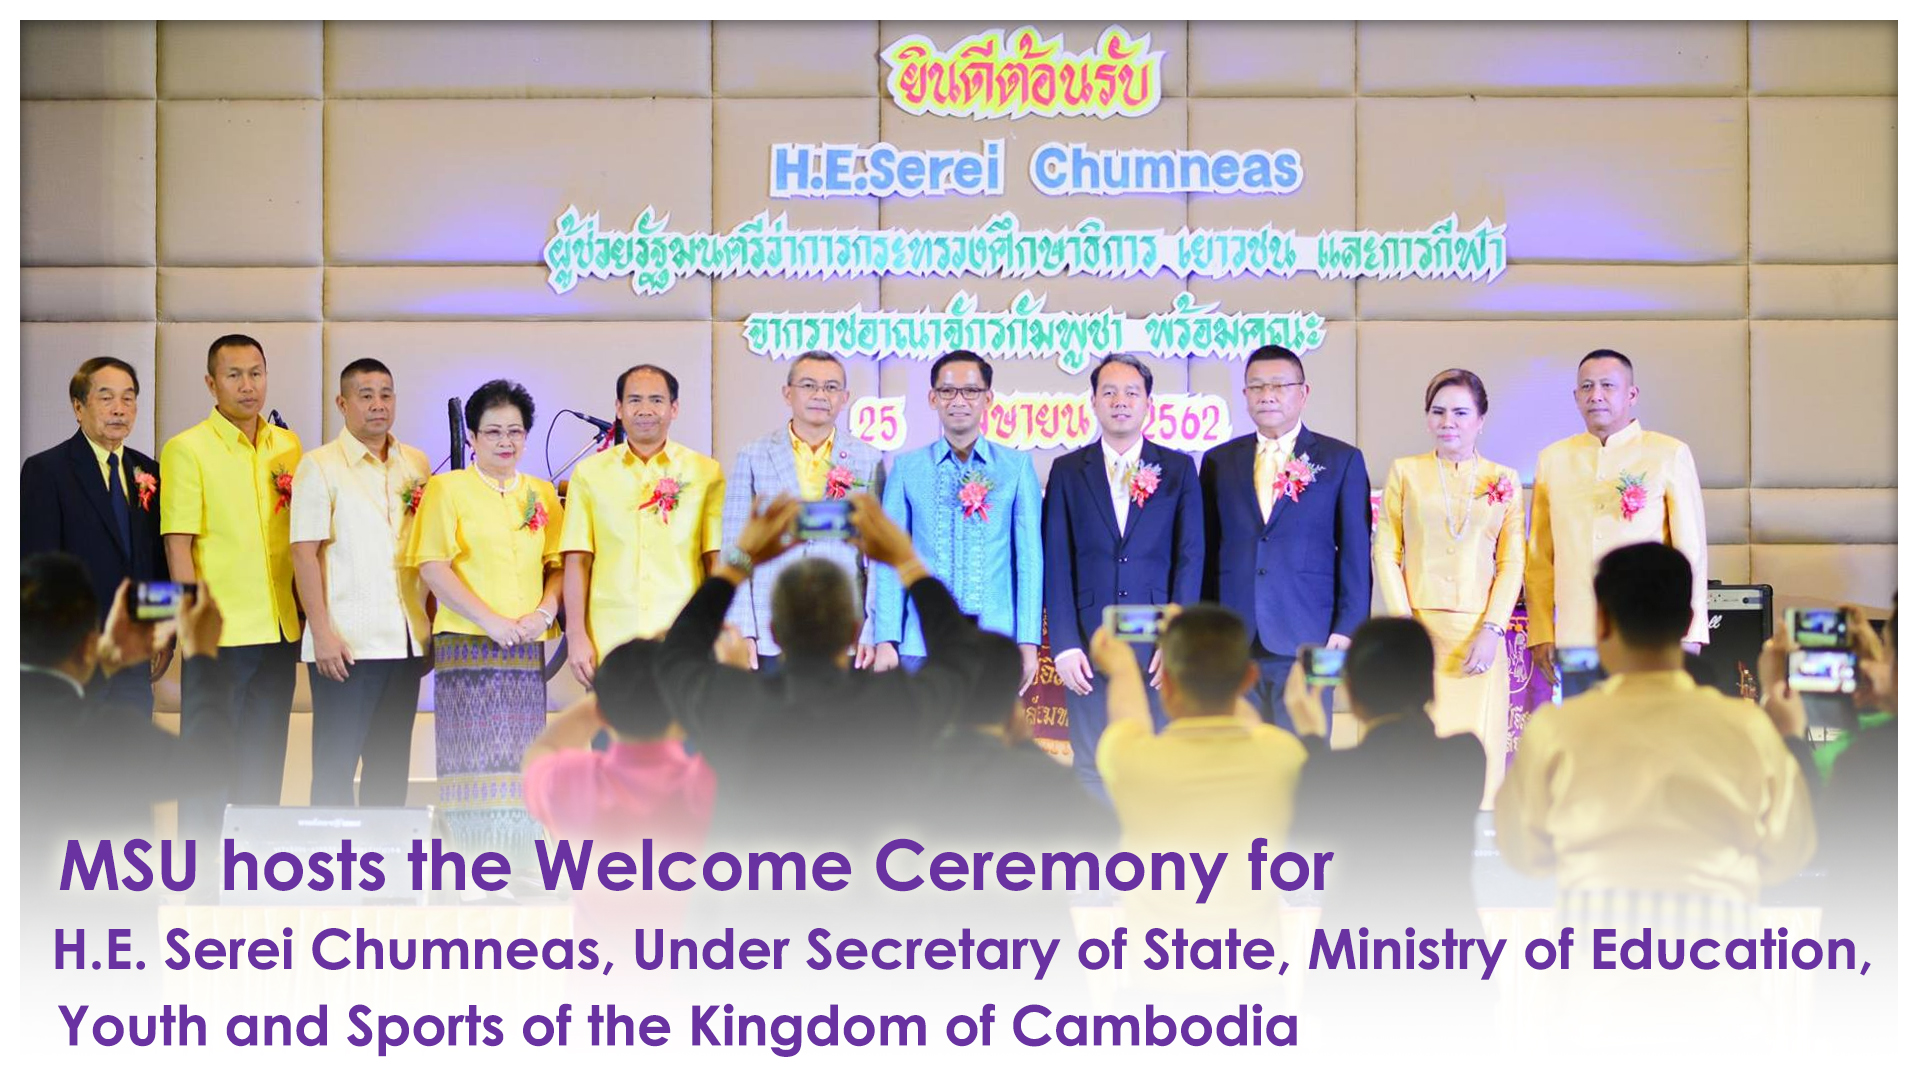 MSU hosts the Welcome Ceremony for H.E. Serei Chumneas, Under Secretary of State, Ministry of Education, Youth and Sports of the Kingdom of Cambodia